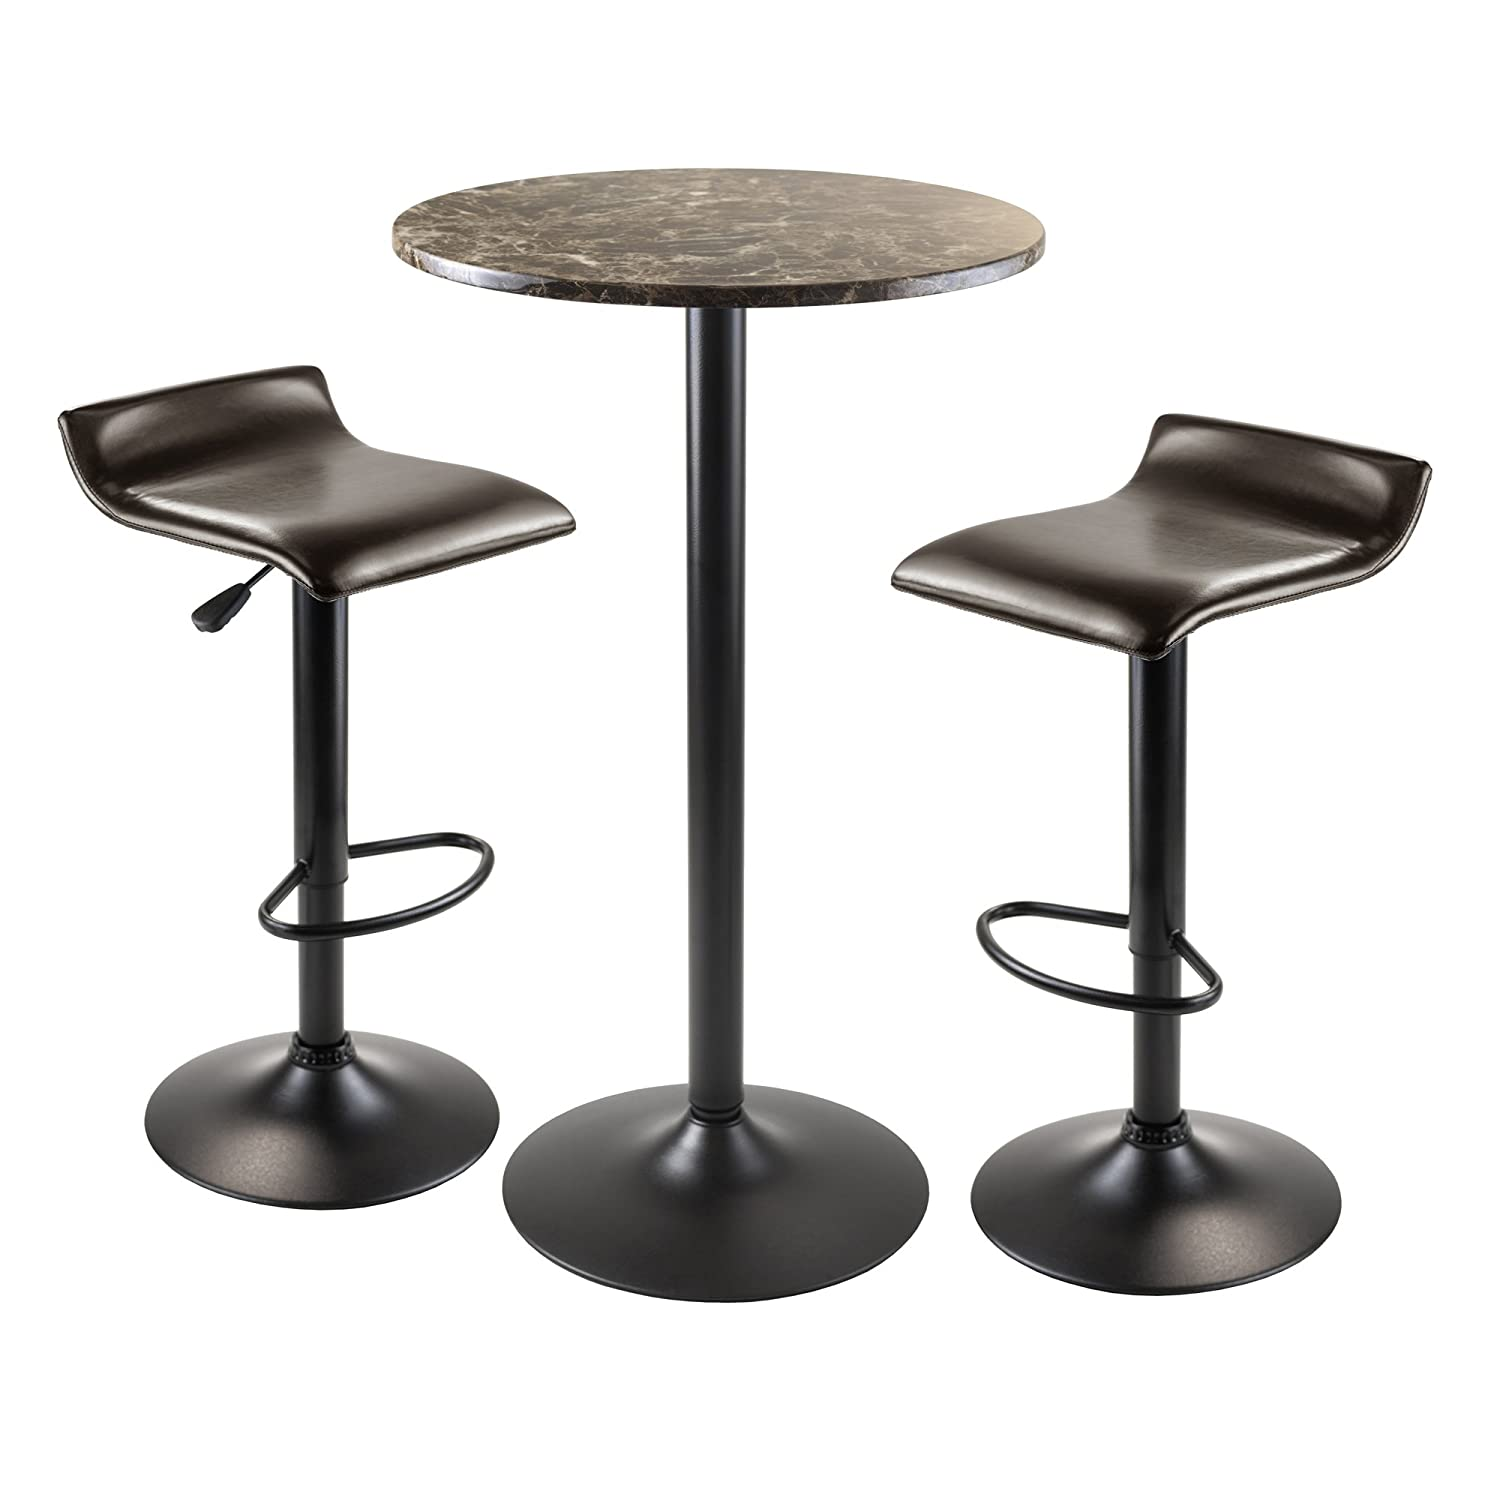 Winsome Wood Cora 3-Piece Round Pub Table with 2 Swivel Stool Set 76383